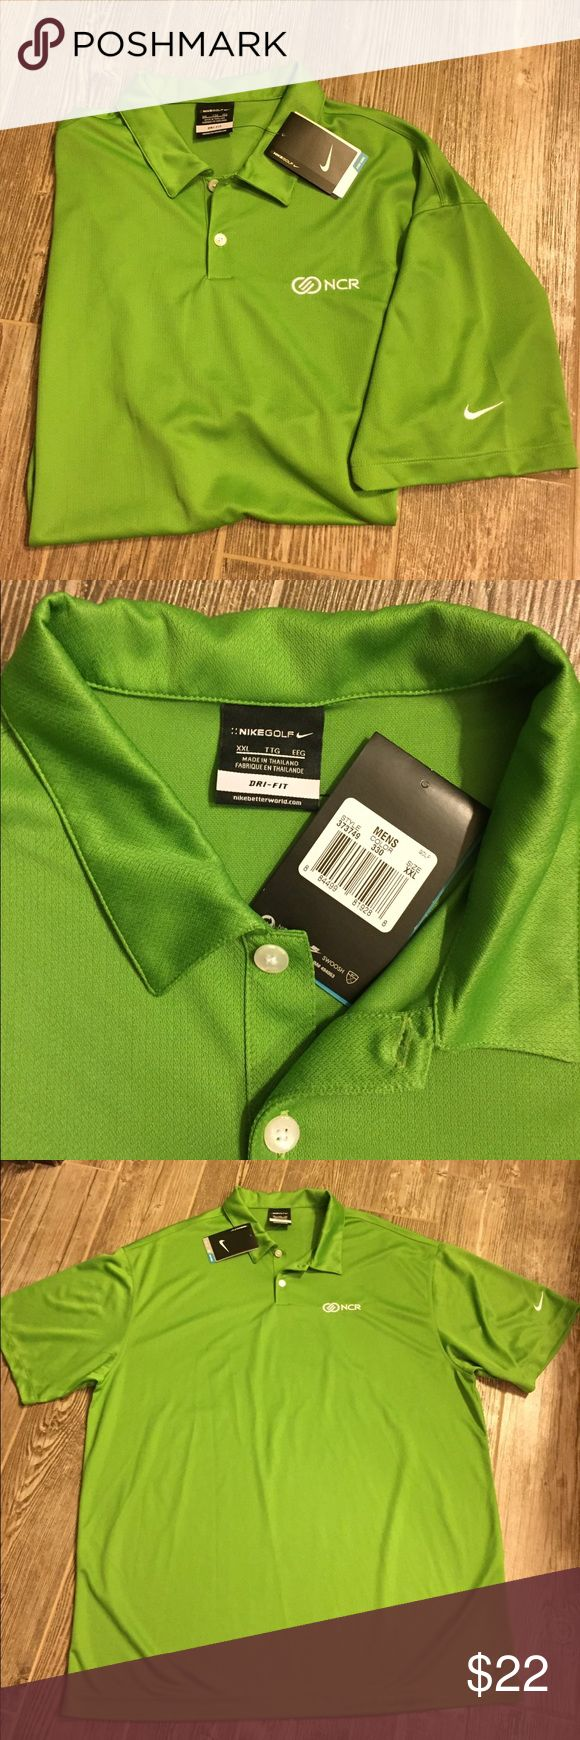 NWT Nike Golf Polo Shirt 2XL New with tags.   Size 2XL From a smoke and animal free house. Nike Shirts Polos